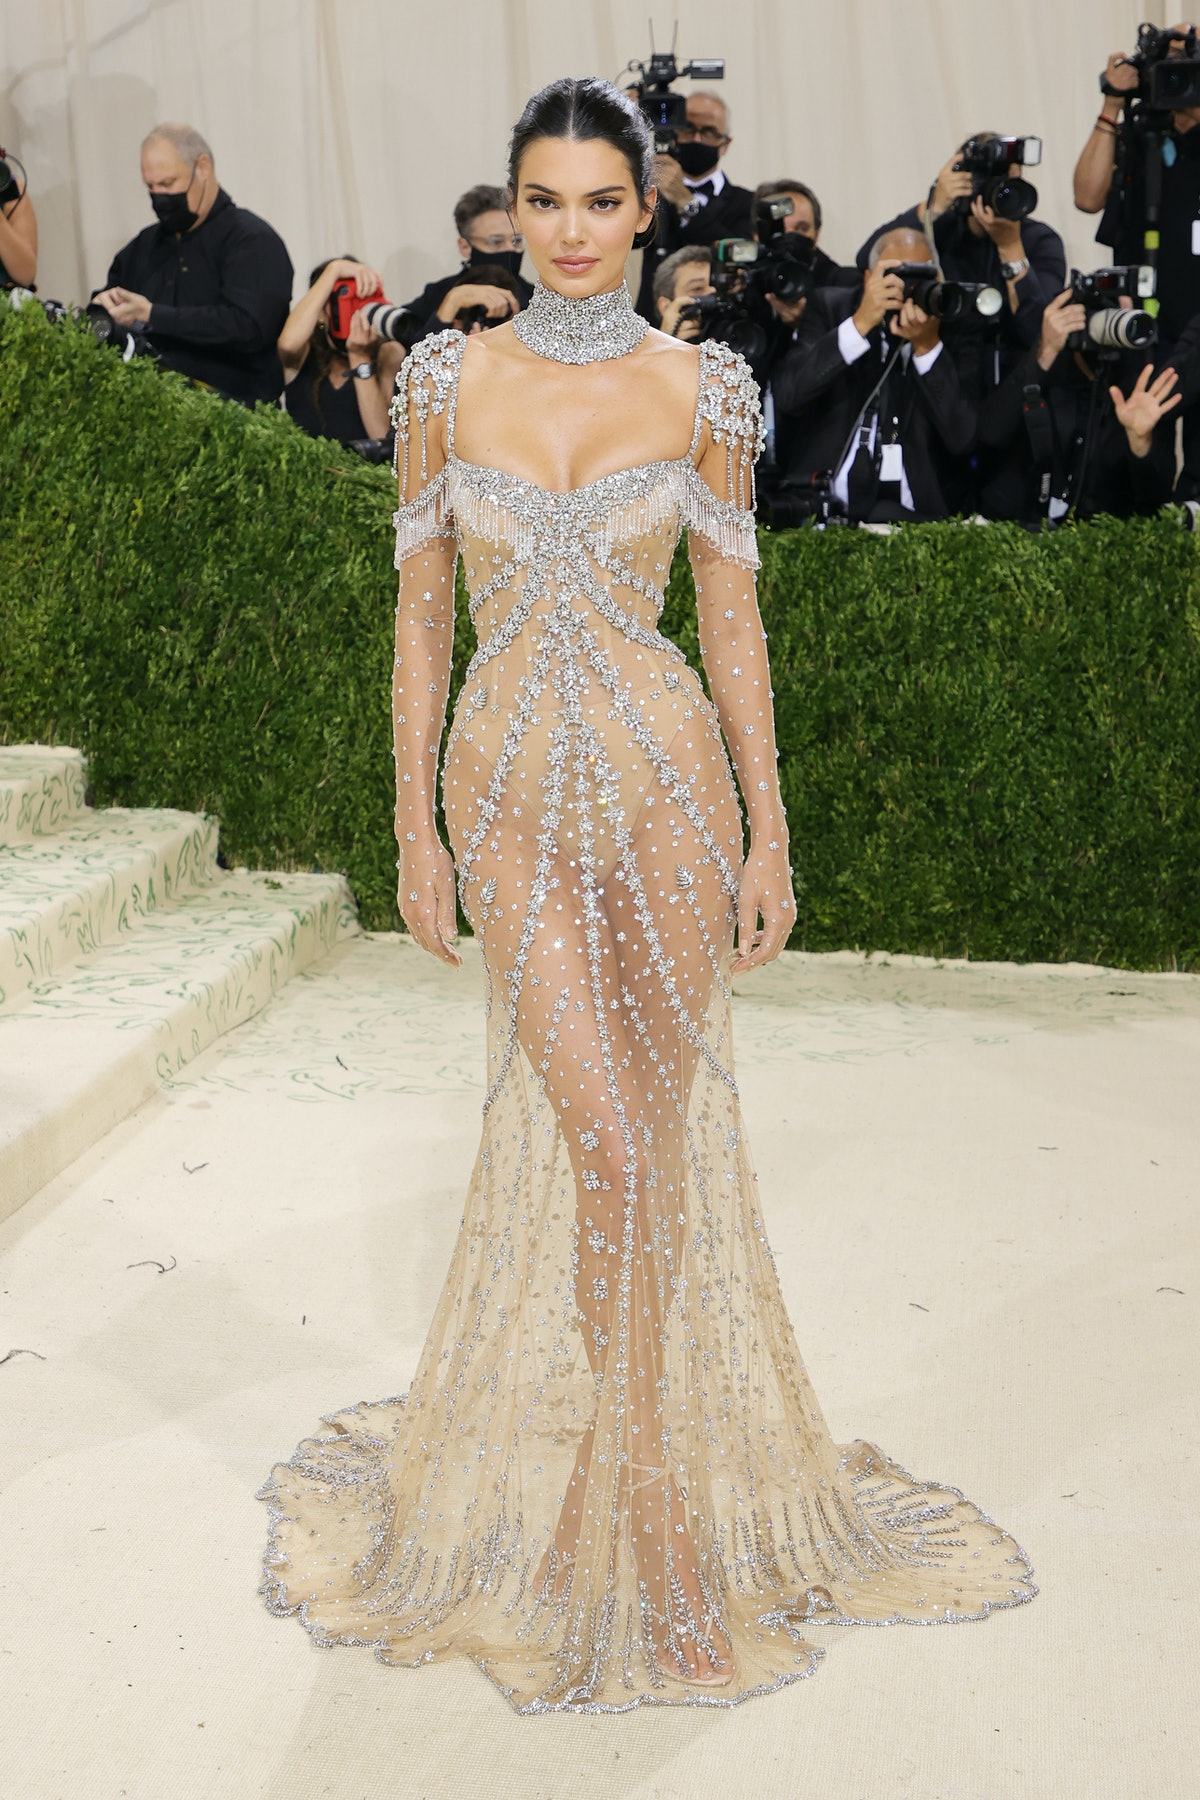 Kendall Jenner attends The 2021 Met Gala